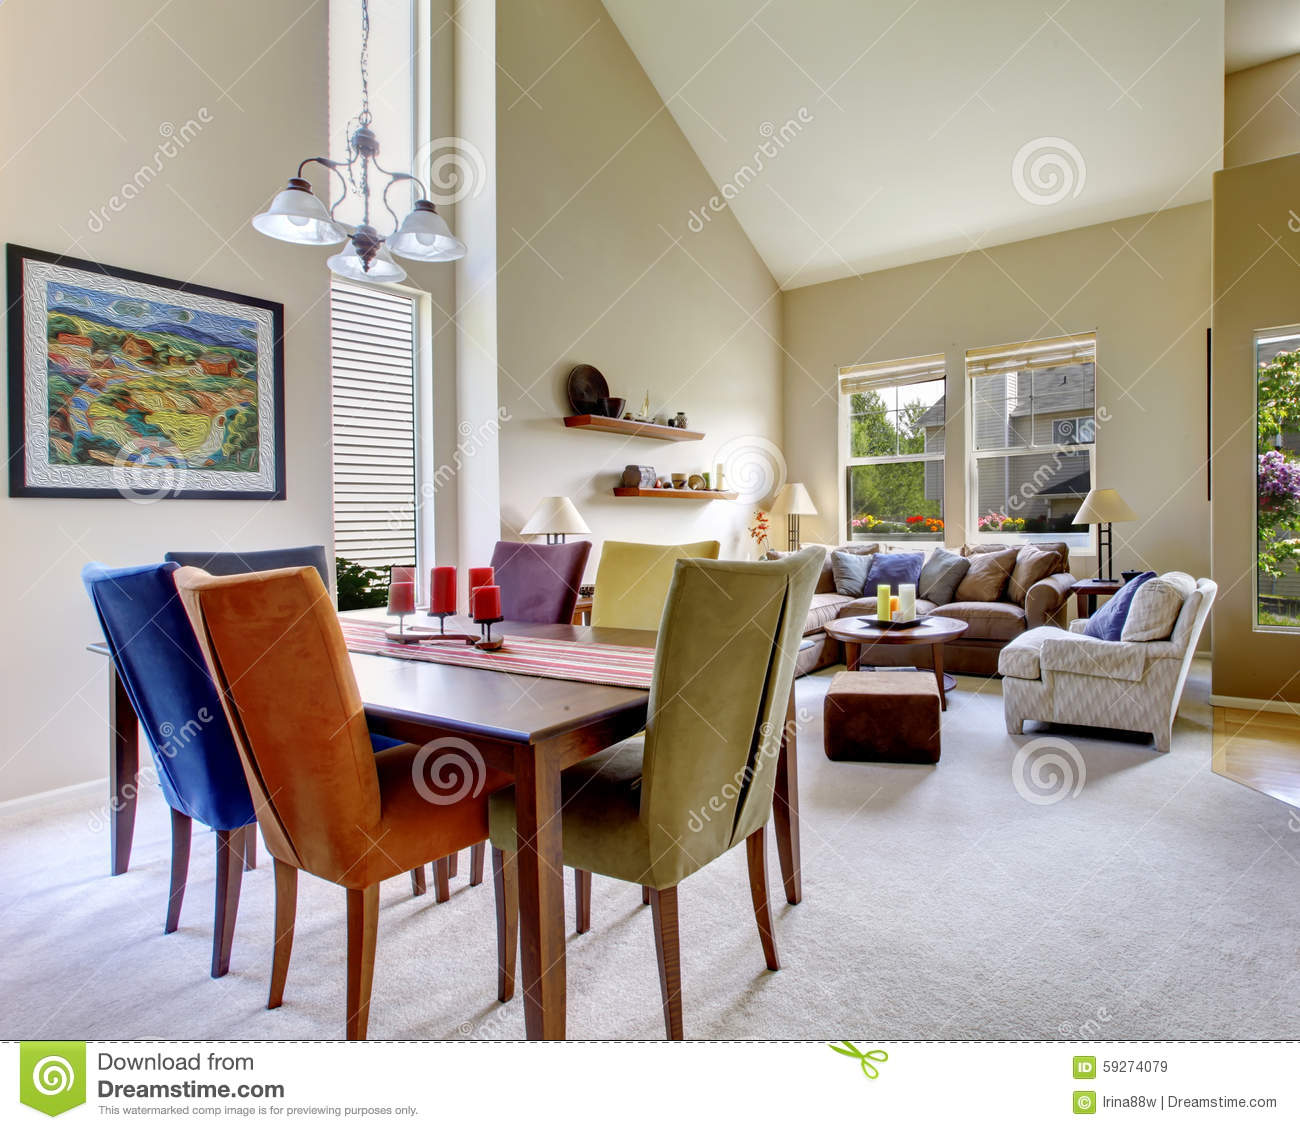 Large Beige Bright Living Room With Dining Room Table With Different Color Ch